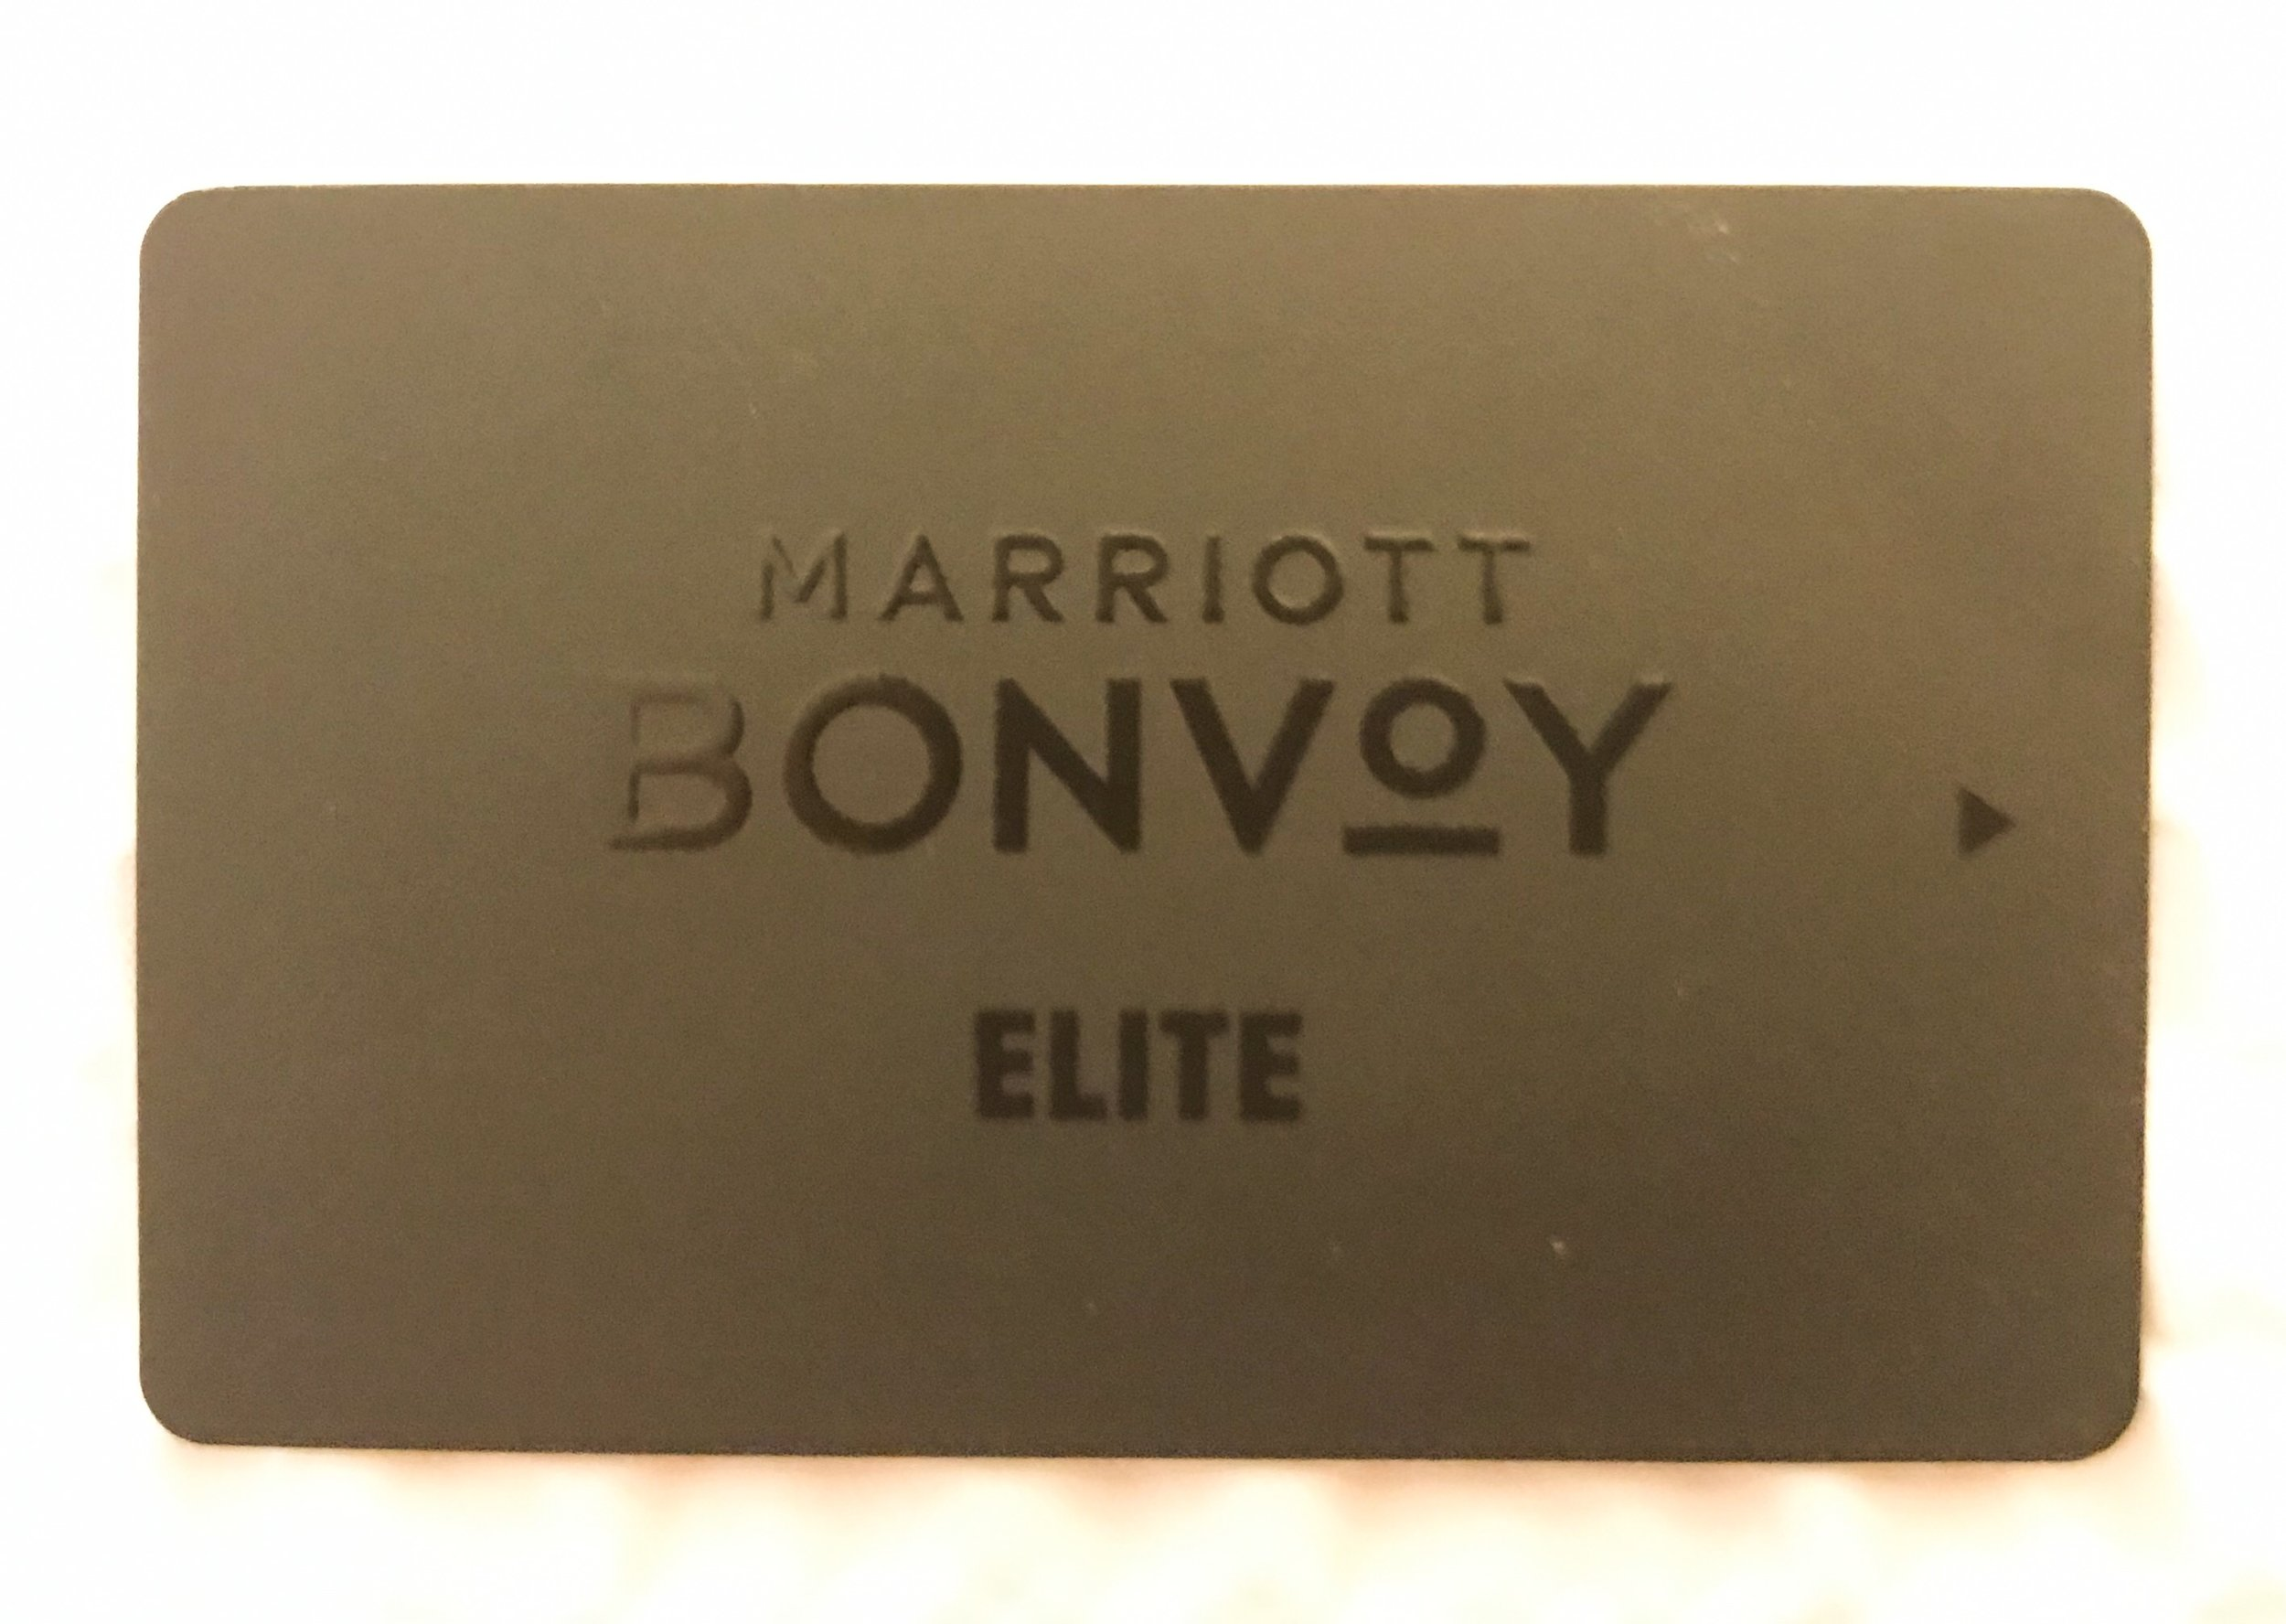 This was my first time staying at a Marriott property after Bonvoy was officially launched as the new Marriott loyalty program. It was only one day after the launch, so I was curious to see if they had done a full replacement or planned to use up current inventory before fully switching over. I didn't care either way, but was pleasantly surprised to see that all Marriott Rewards branded items were replaced with Marriott Bonvoy (all except my $10 meal credit).